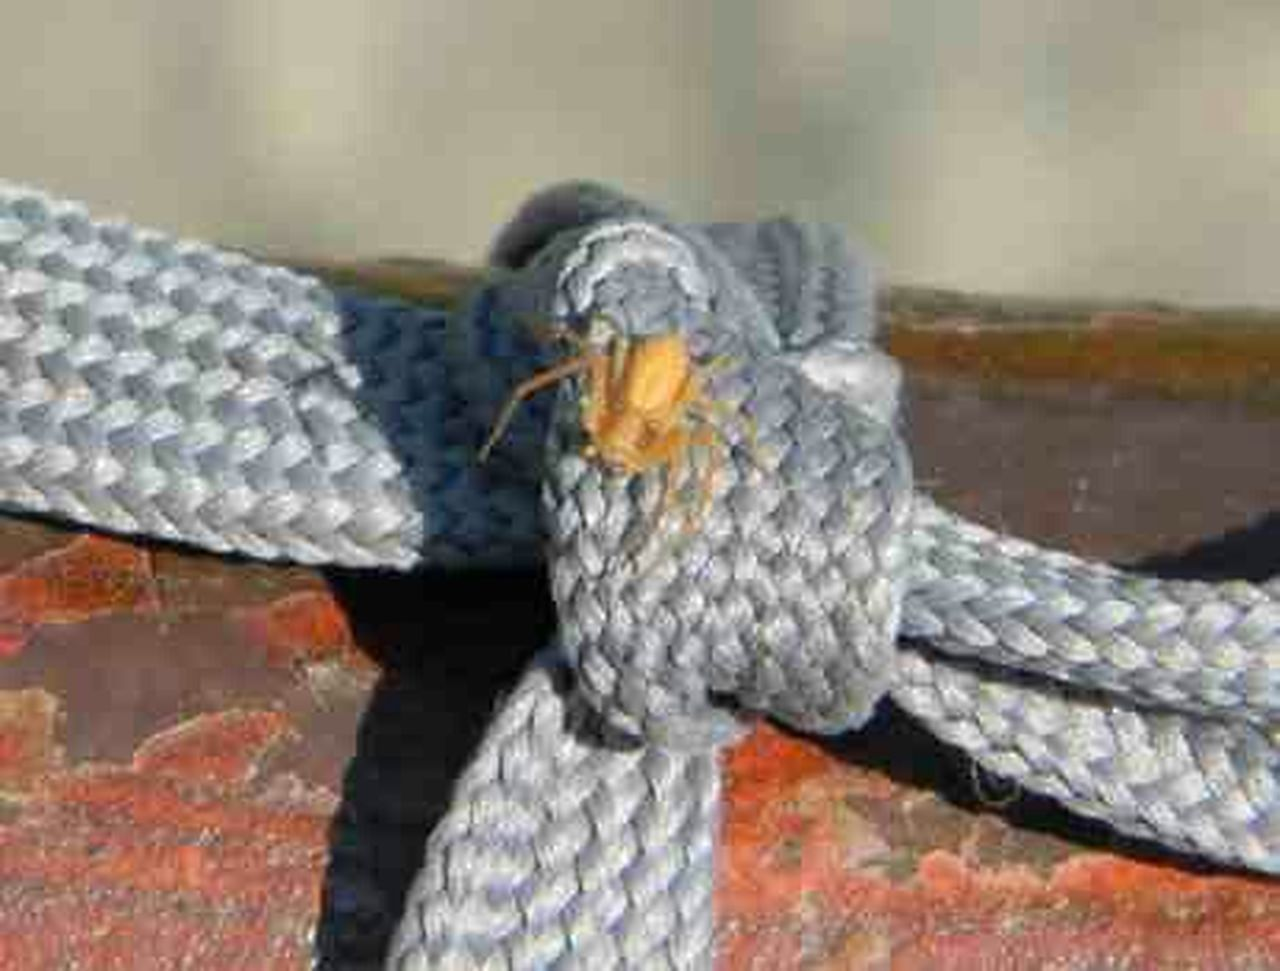 Spider Rope Insect Photo Insect Photography Beautiful Nature Nature Spiders Itsy Bitsy Spider